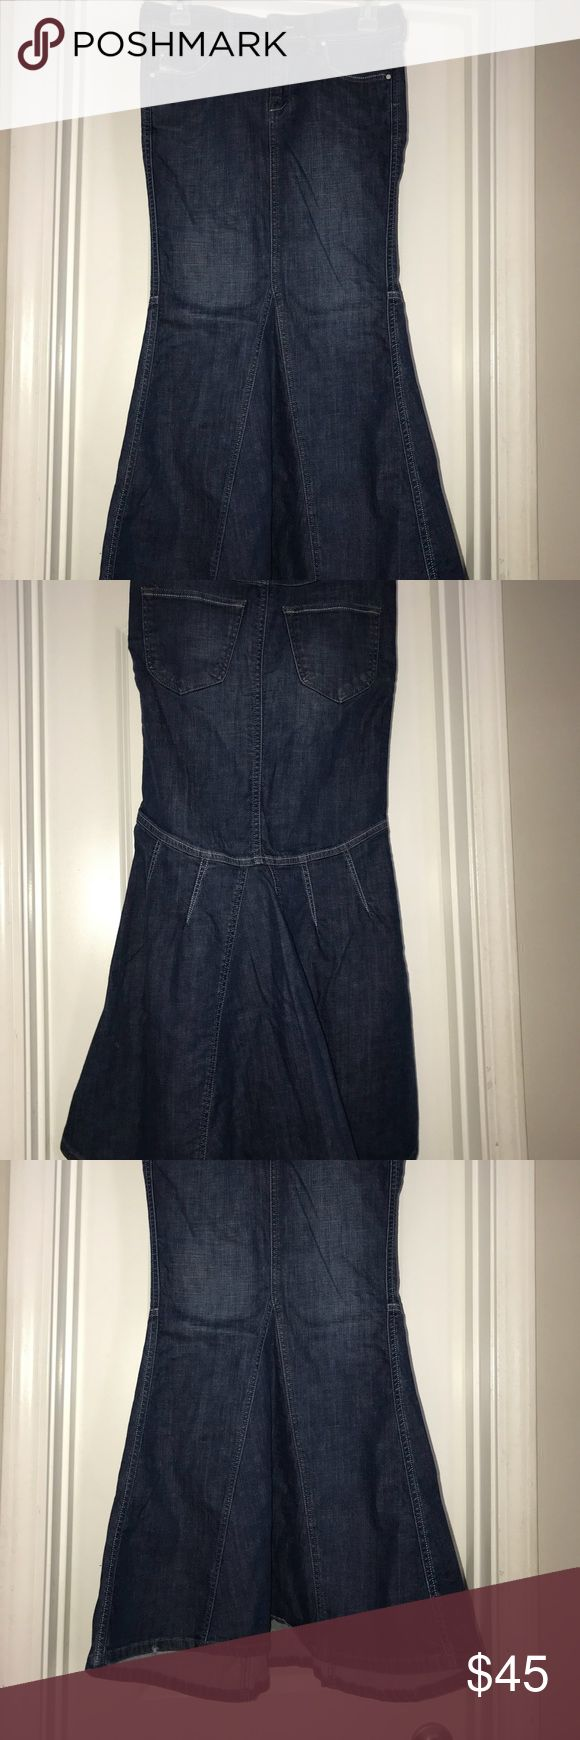 Diesel Long Denim Skirt Flared, fitted! small size, labeled as size 26 Diesel Skirts Maxi